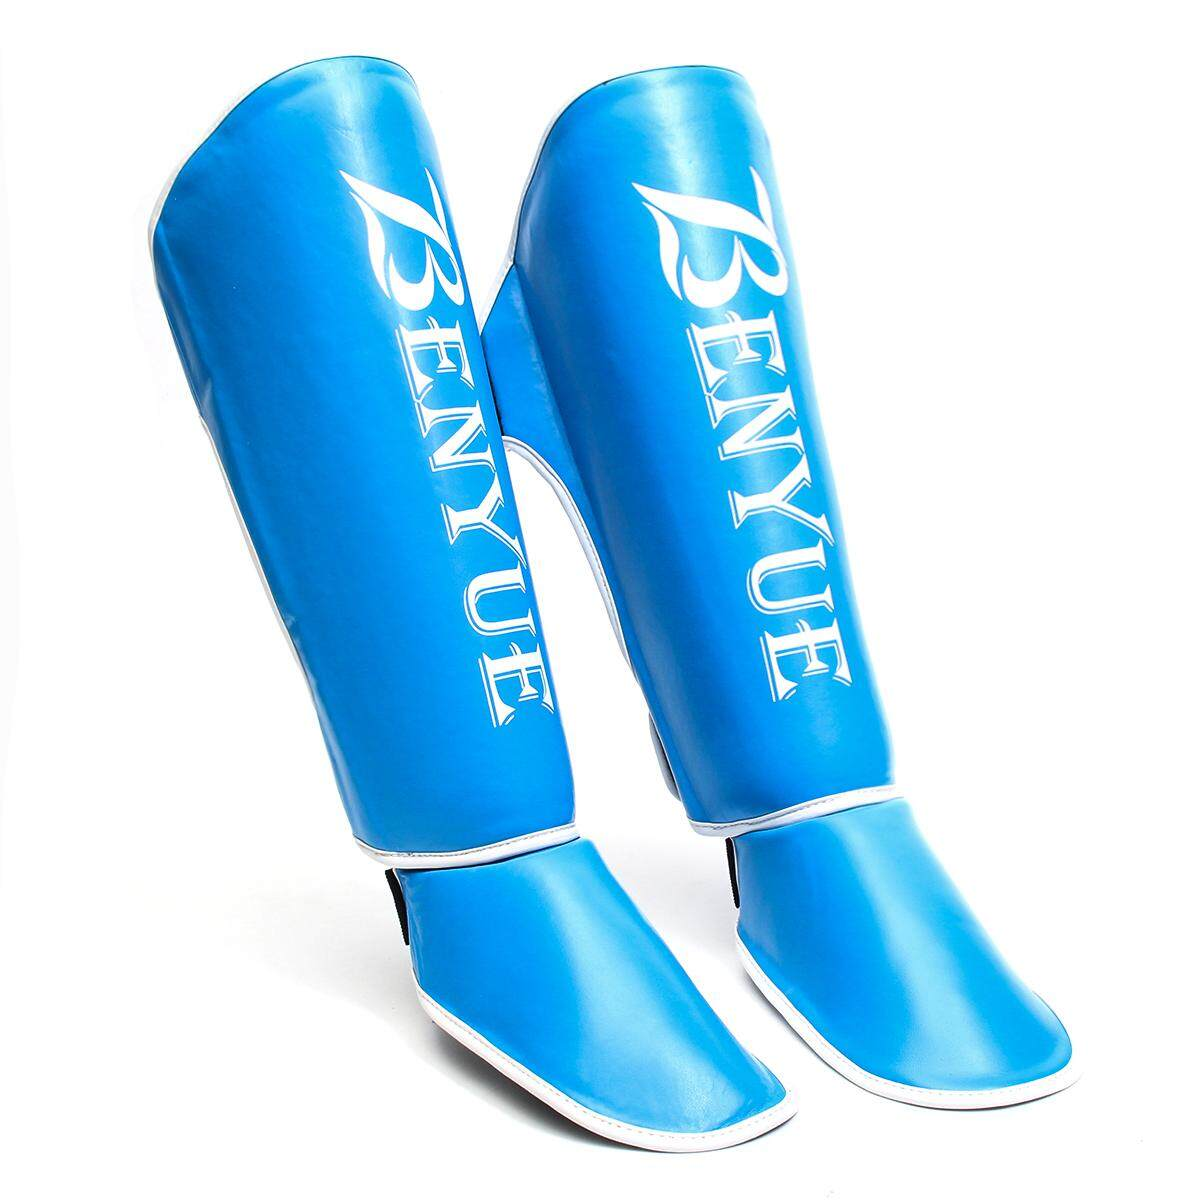 Hình ảnh 1 Pair Of Instep Foot Boxing Pads [Blue WhiteM] - intl